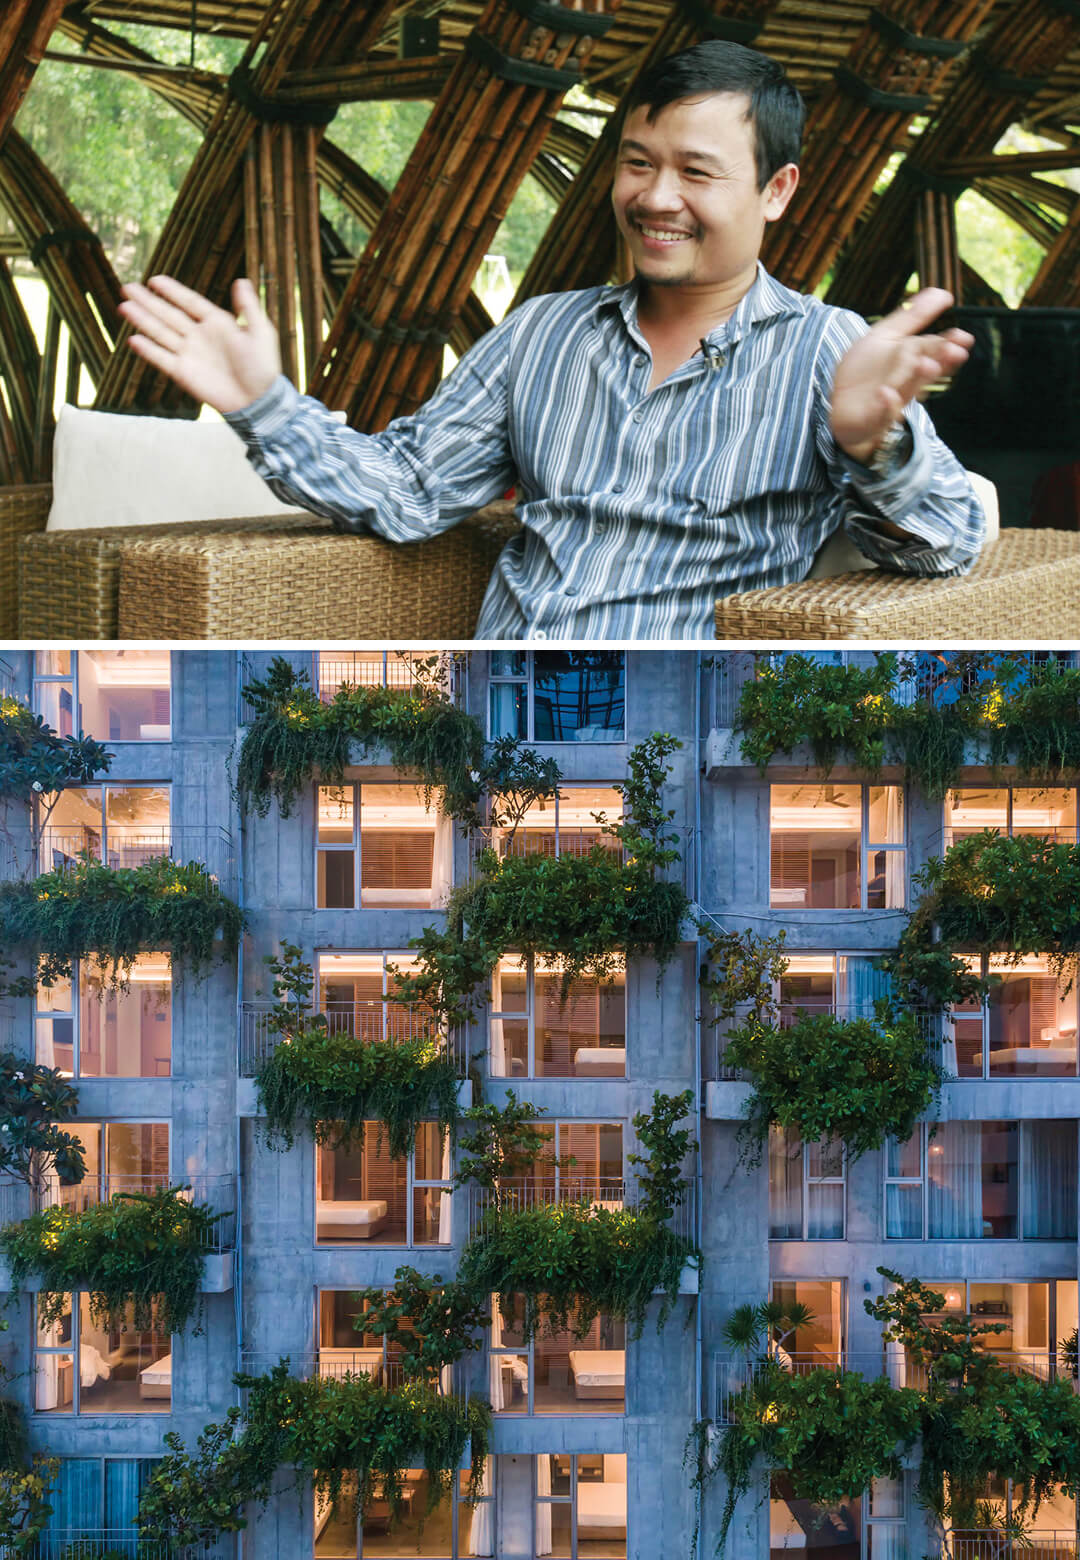 L to R: Architect Vo Trong Nghia of VTN Architects, and landscaped balconies of Chicland Hotel by VTN Architects | Interview with Vo Trong Nghia of VTN Architects | STIRworld